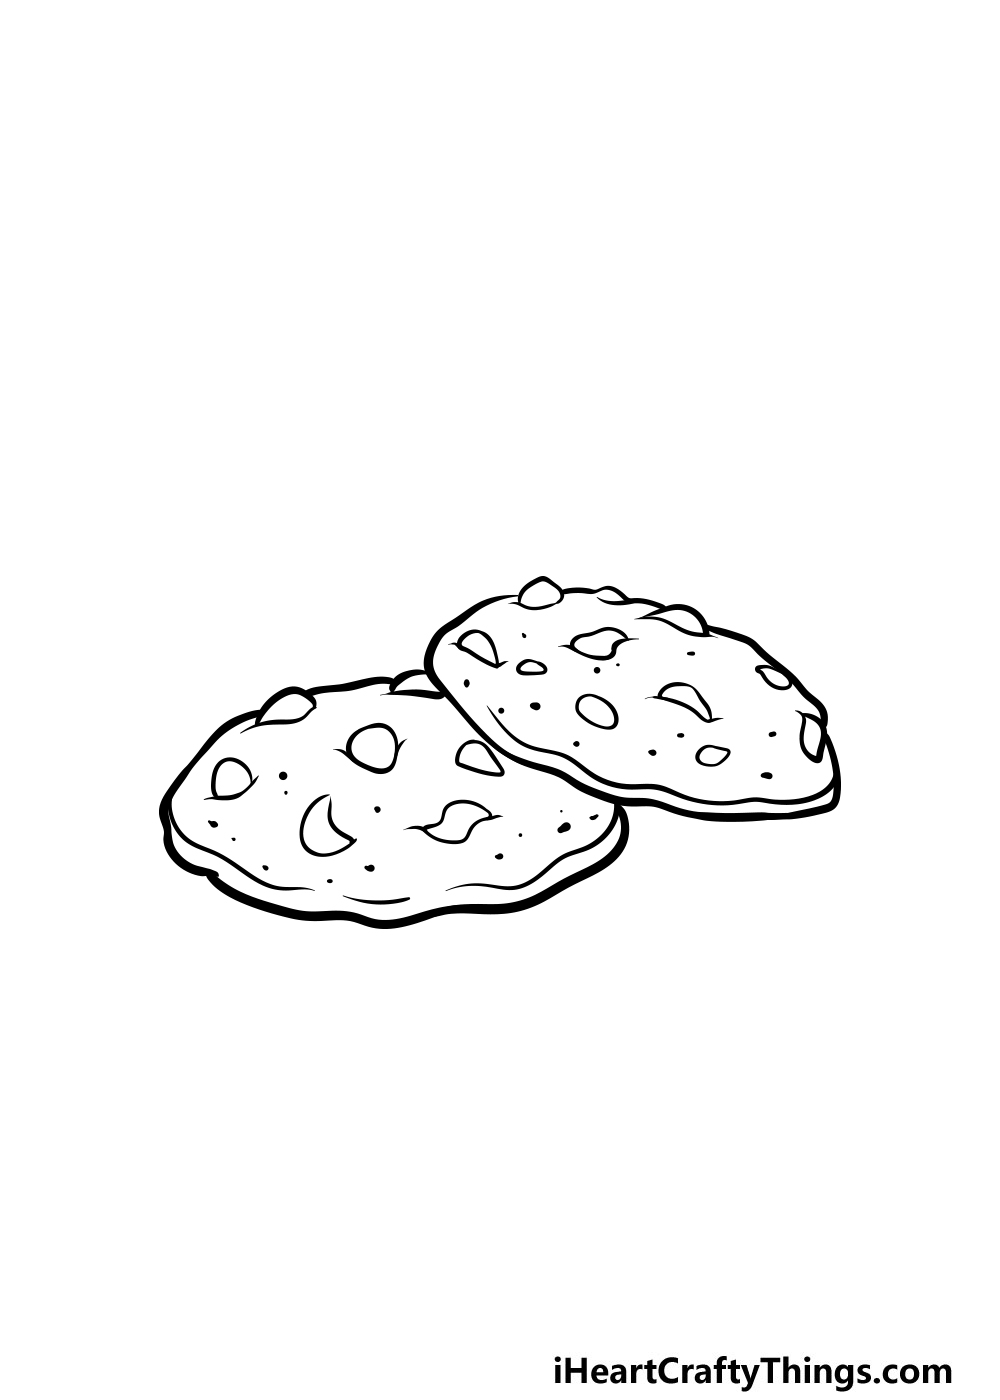 drawing a cookie step 6